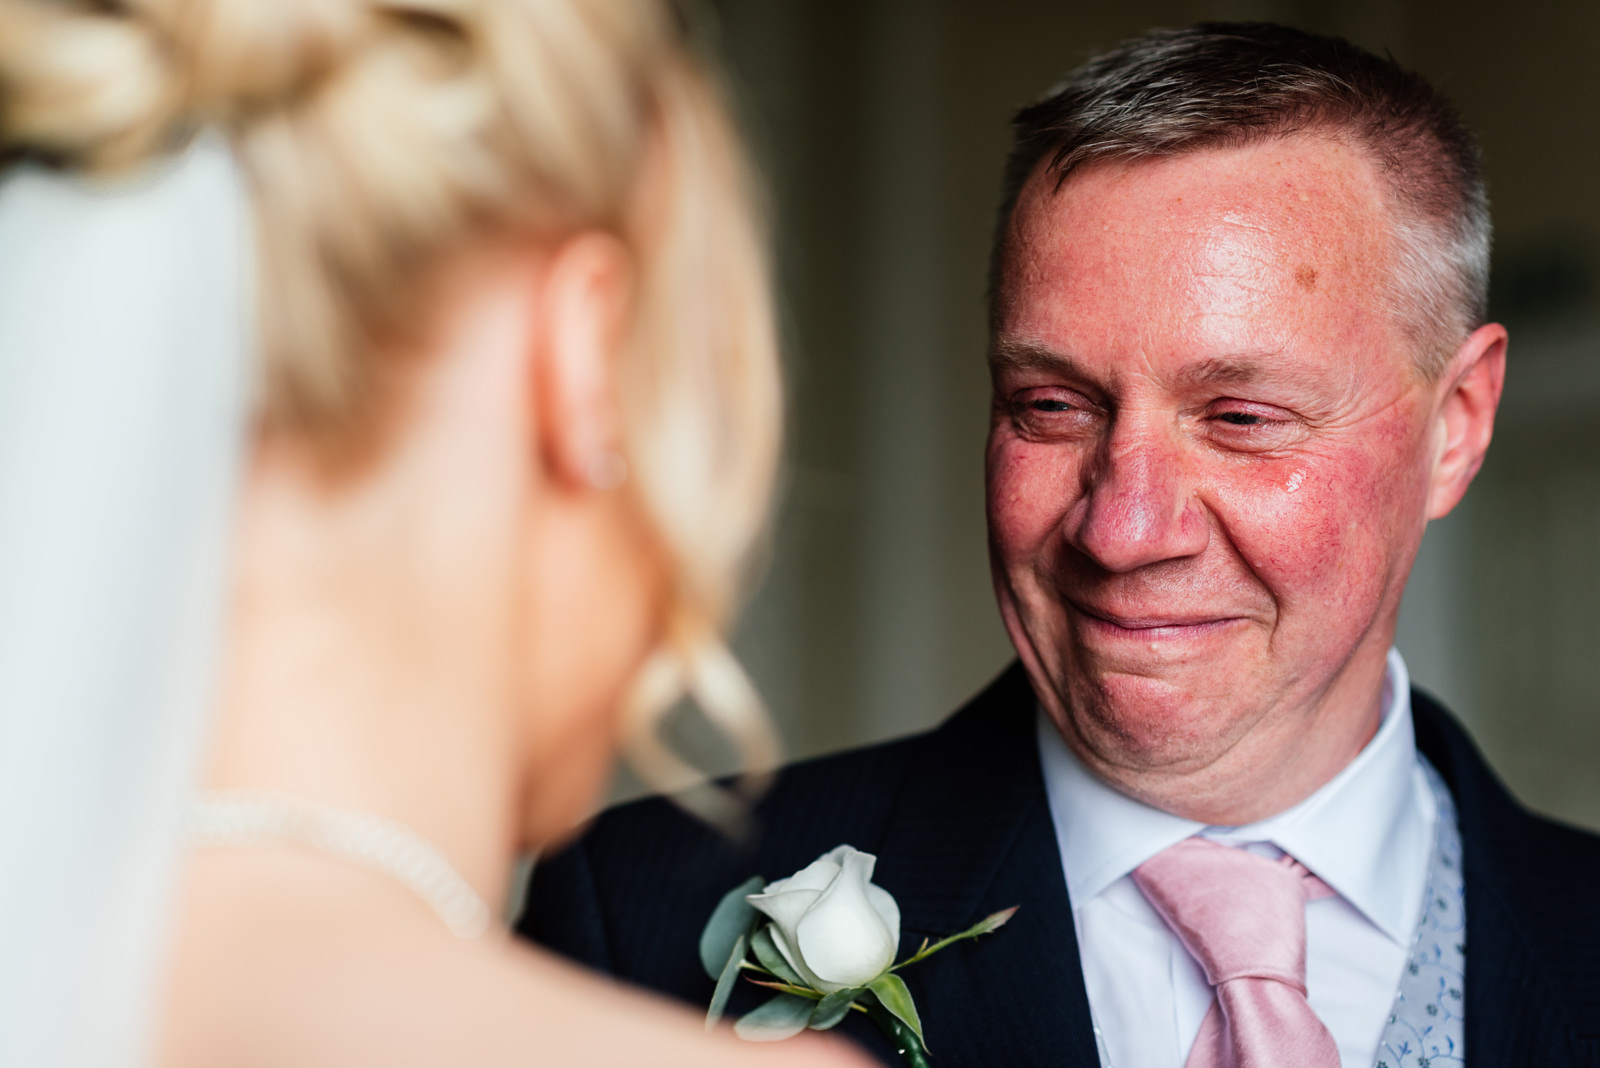 father with tear in his eye at seeing his daughter in wedding dress